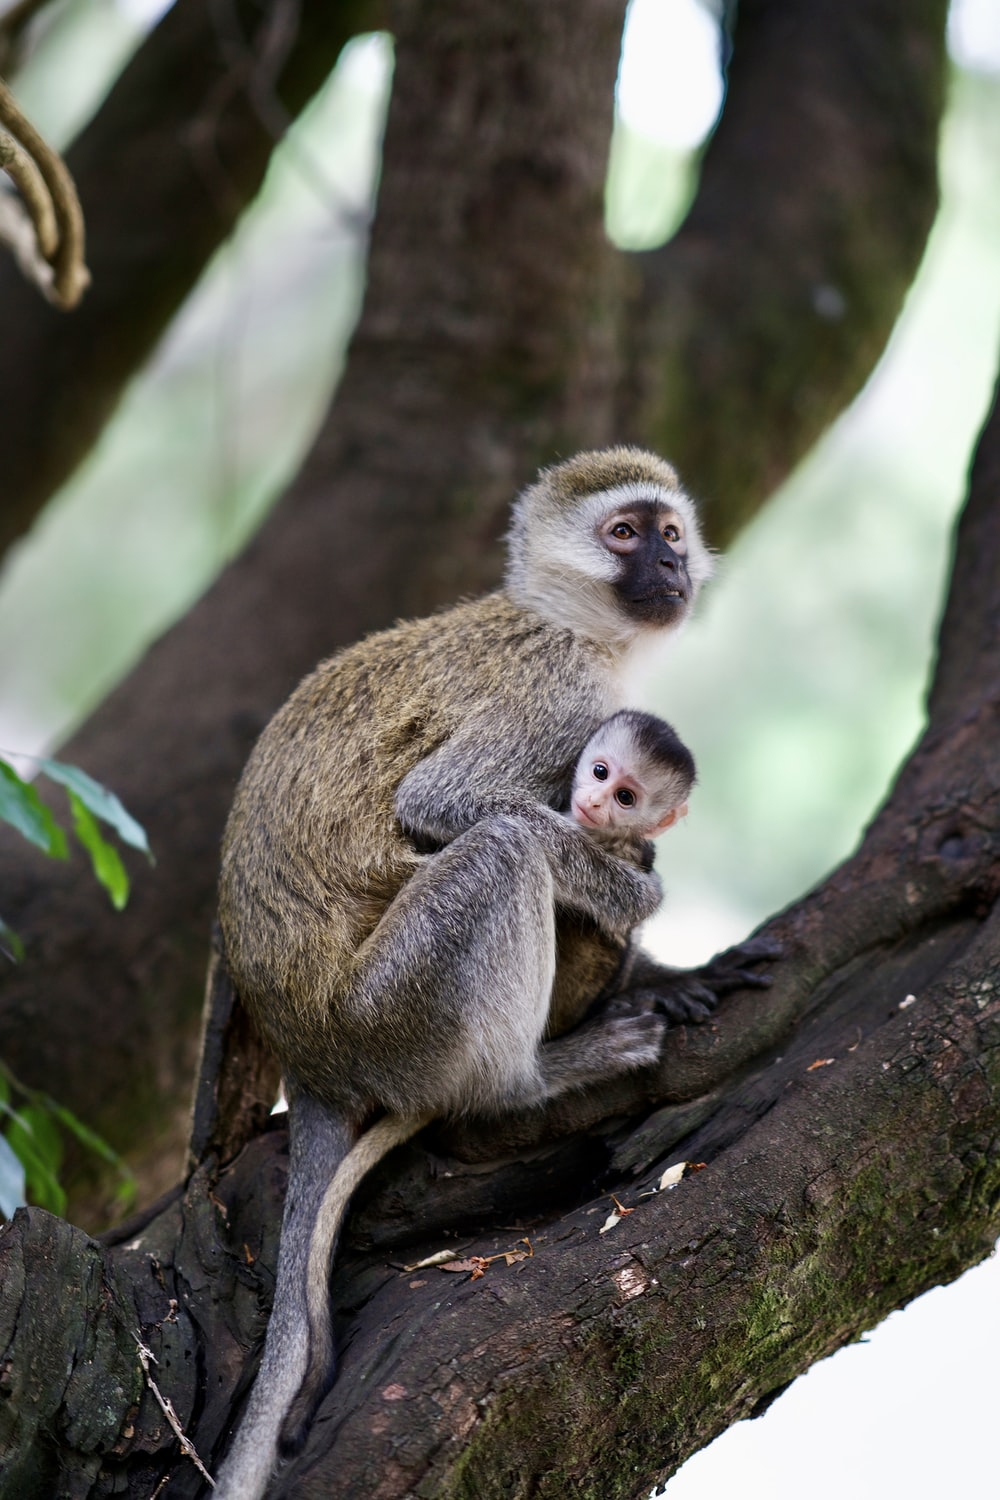 two monkeys on tree branch during daytime